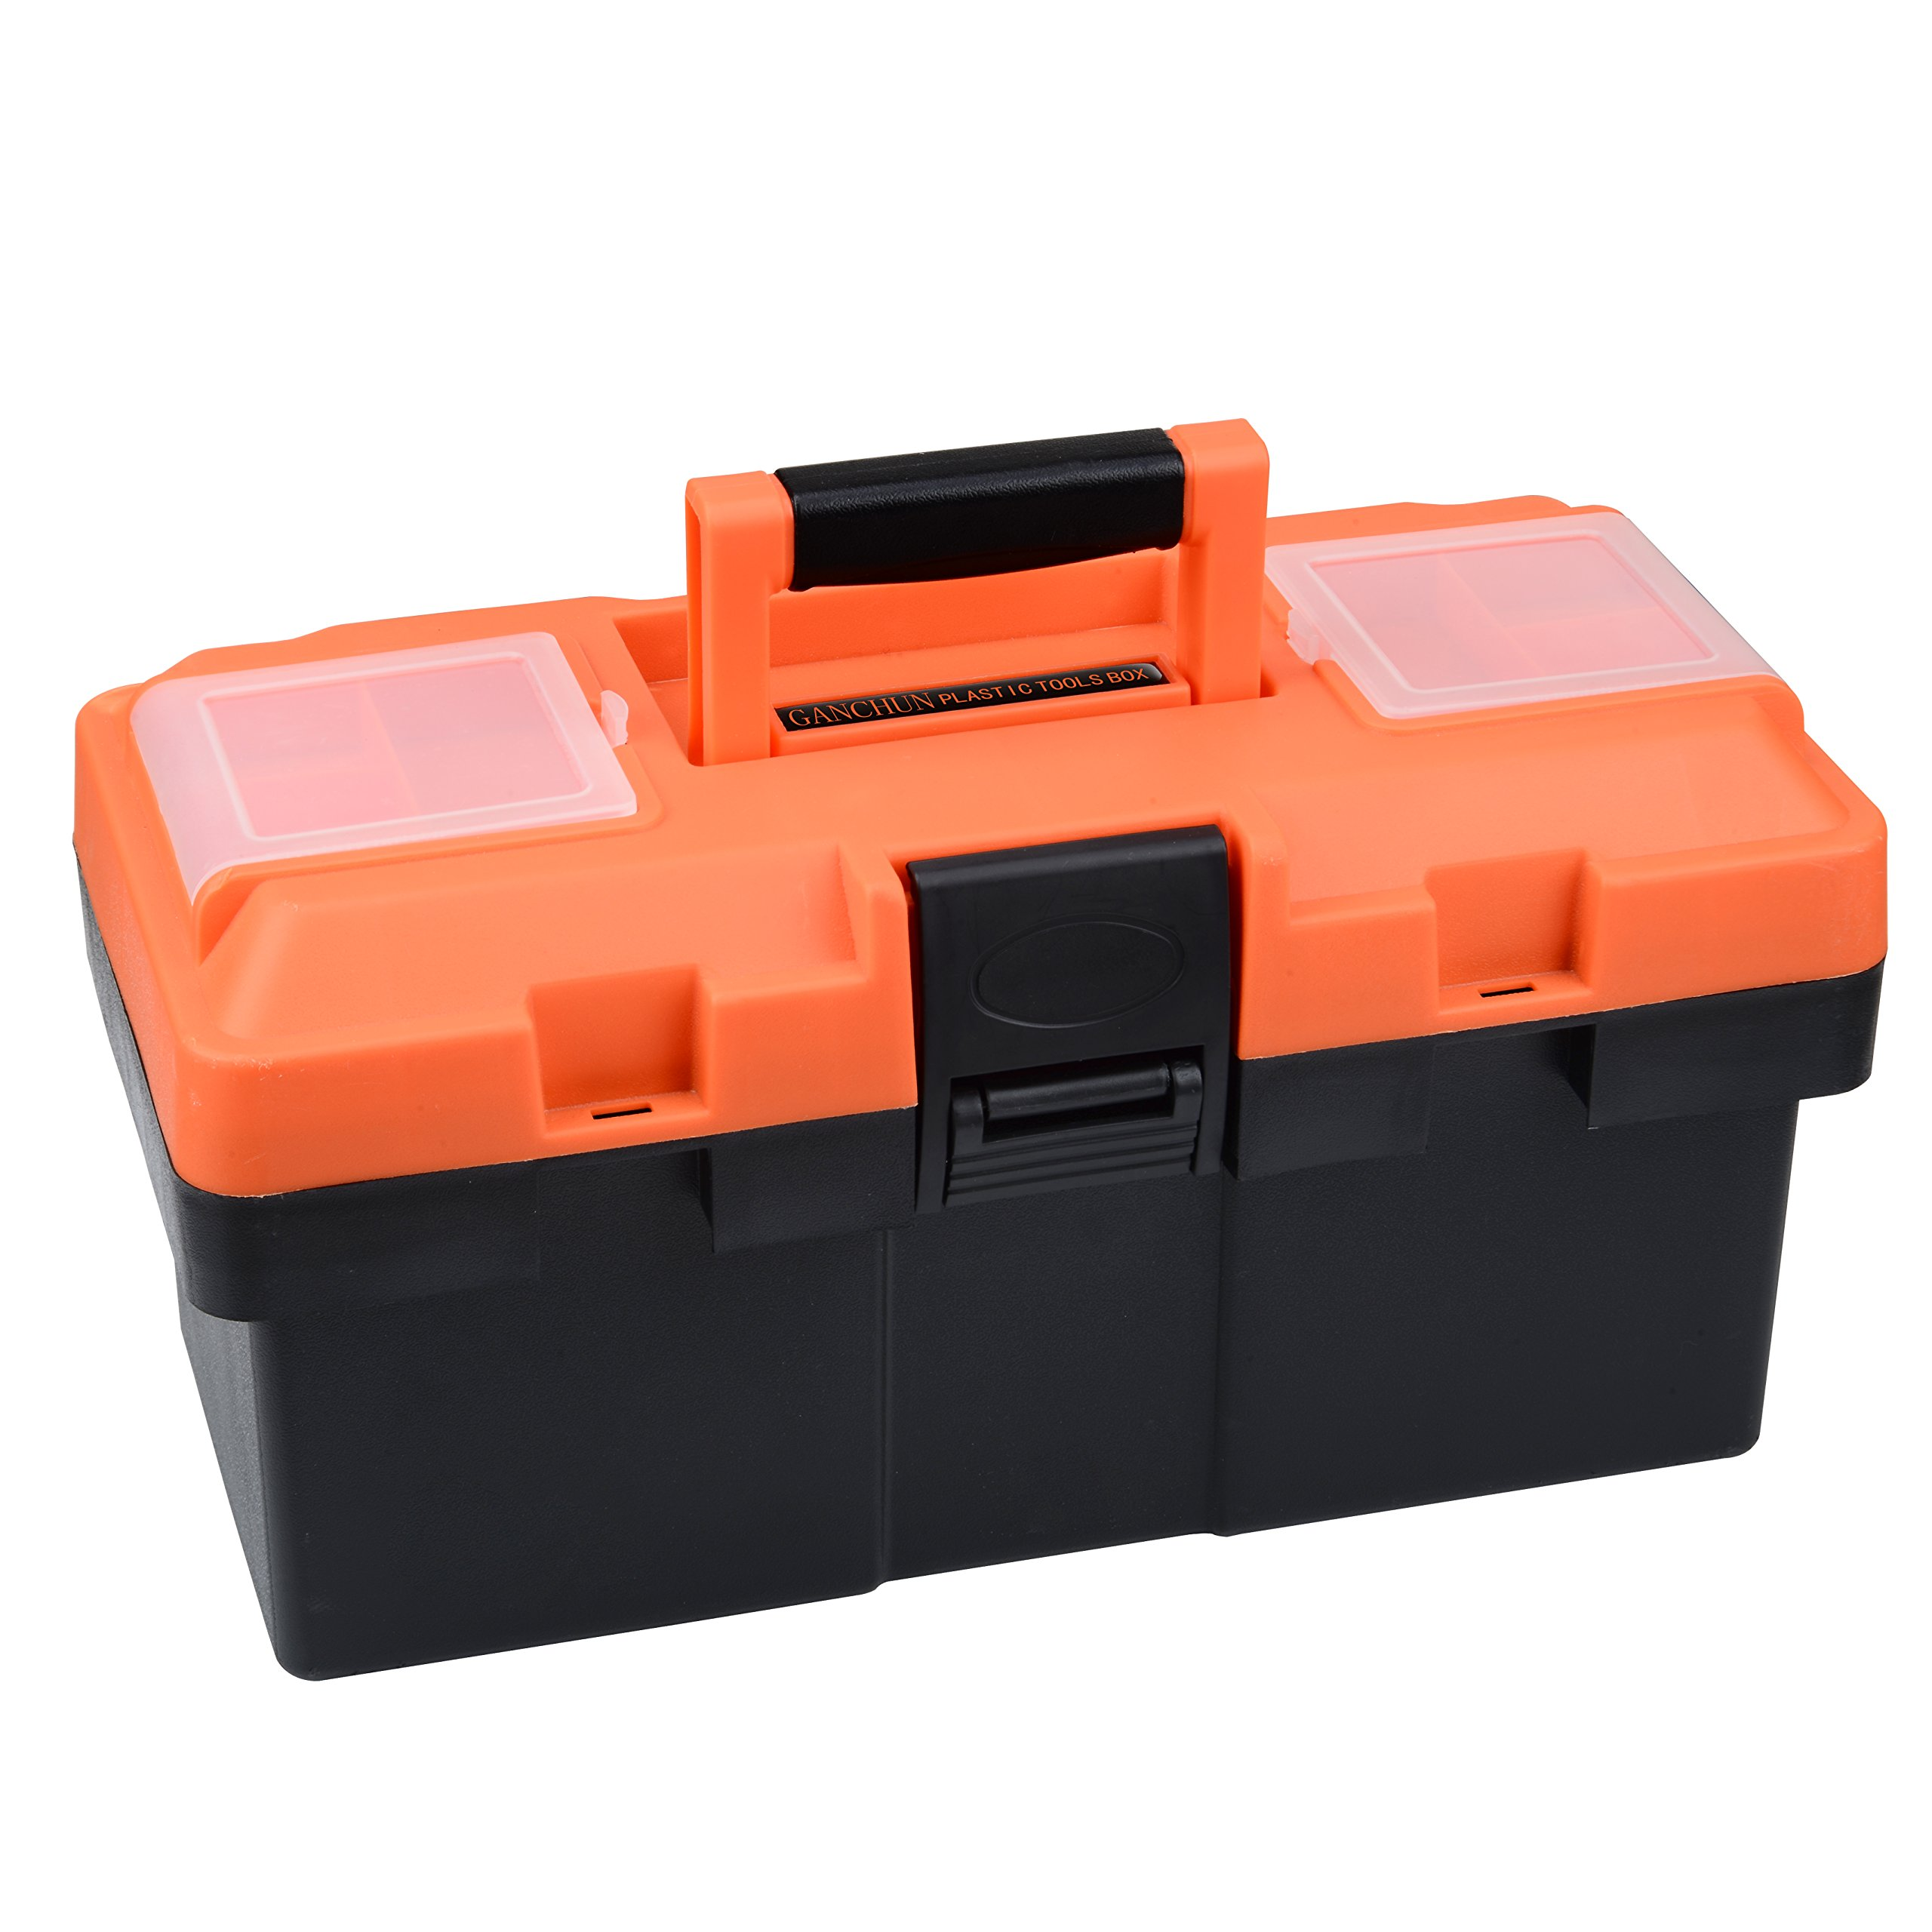 GANCHUN 14-inch Consumer Storage and Toolbox for Tool or Craft Storage,Locking Lid and Extra Storage. by GANCHUN